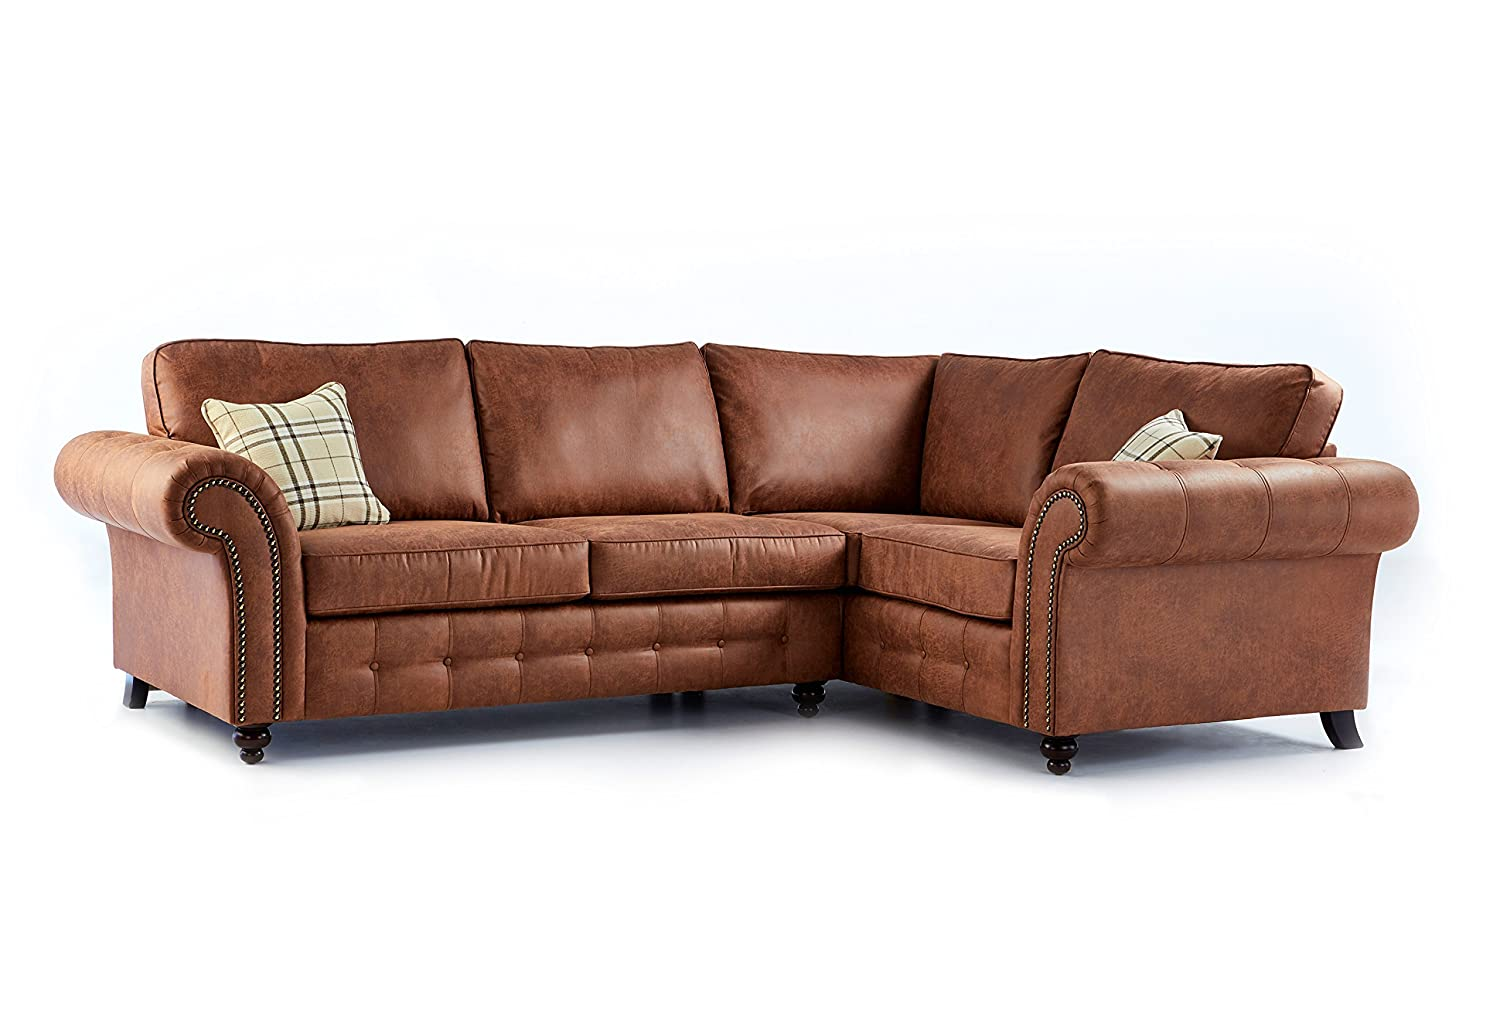 New High Quality Oakridge Large Leather 4 Seater Corner